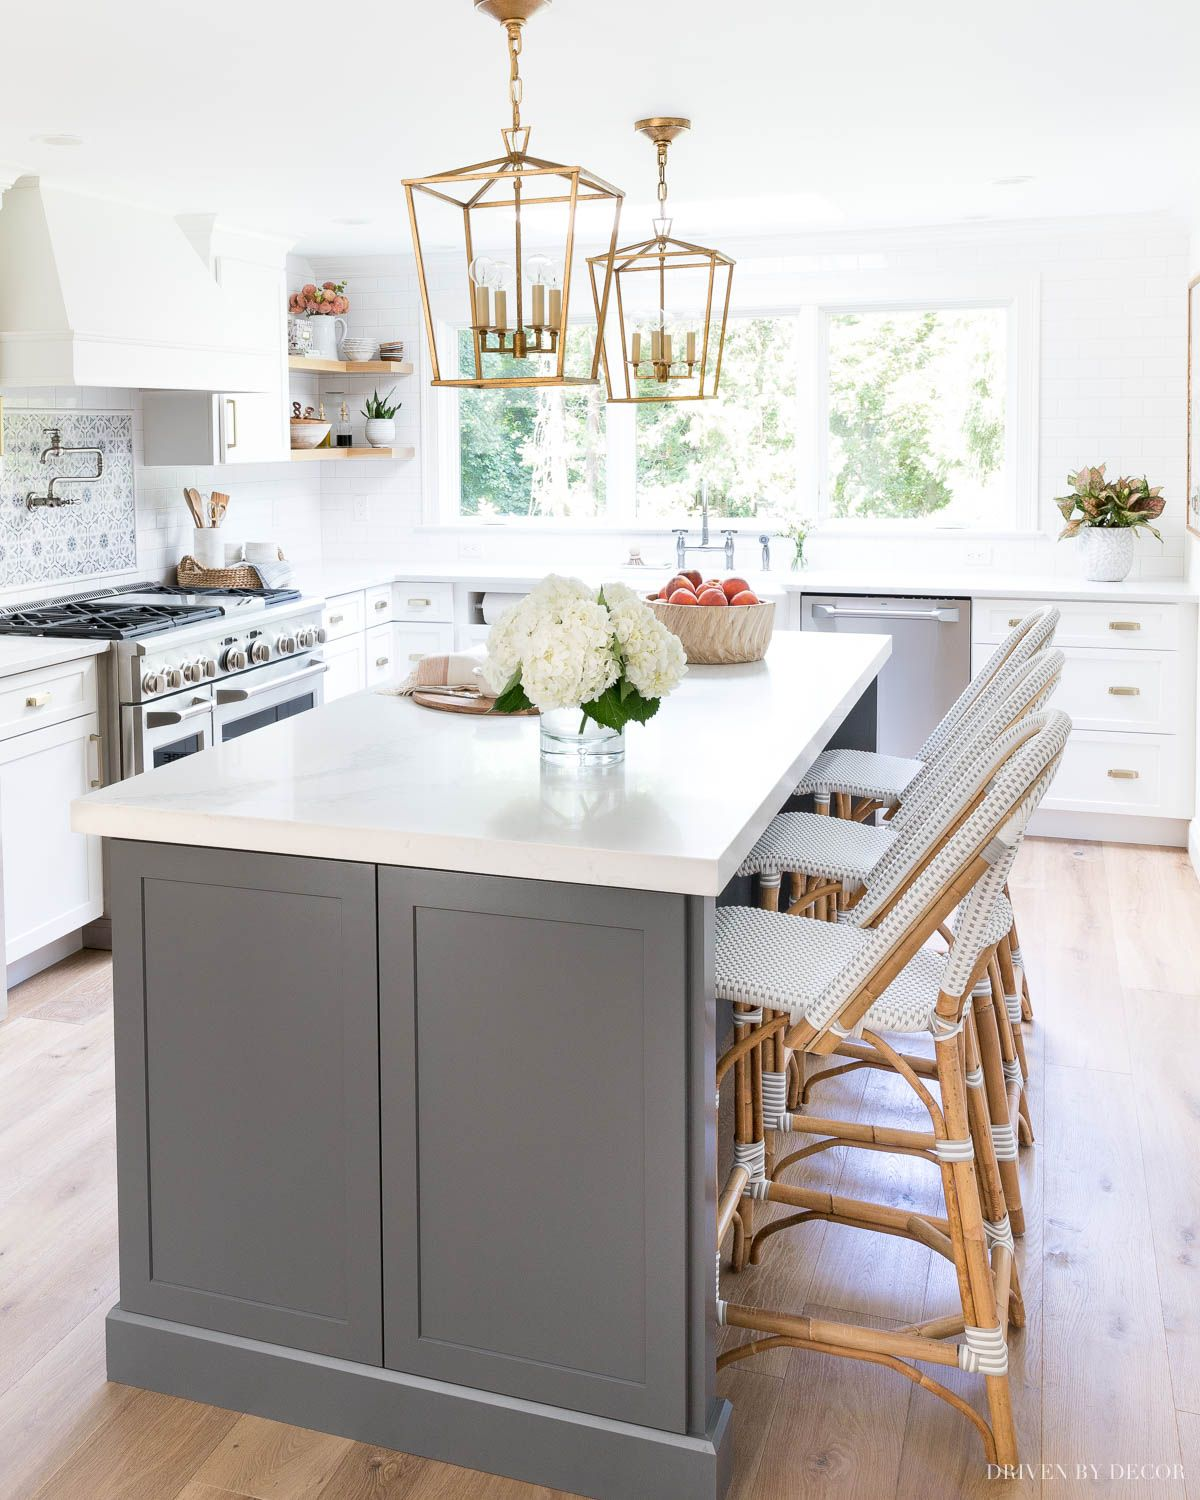 Kitchen Counter Stools 101 4 Must Know Things To Look For My Favorite Picks Driven By Decor In 2021 Kitchen Remodel Small Newly Remodeled Kitchens Gray And White Kitchen